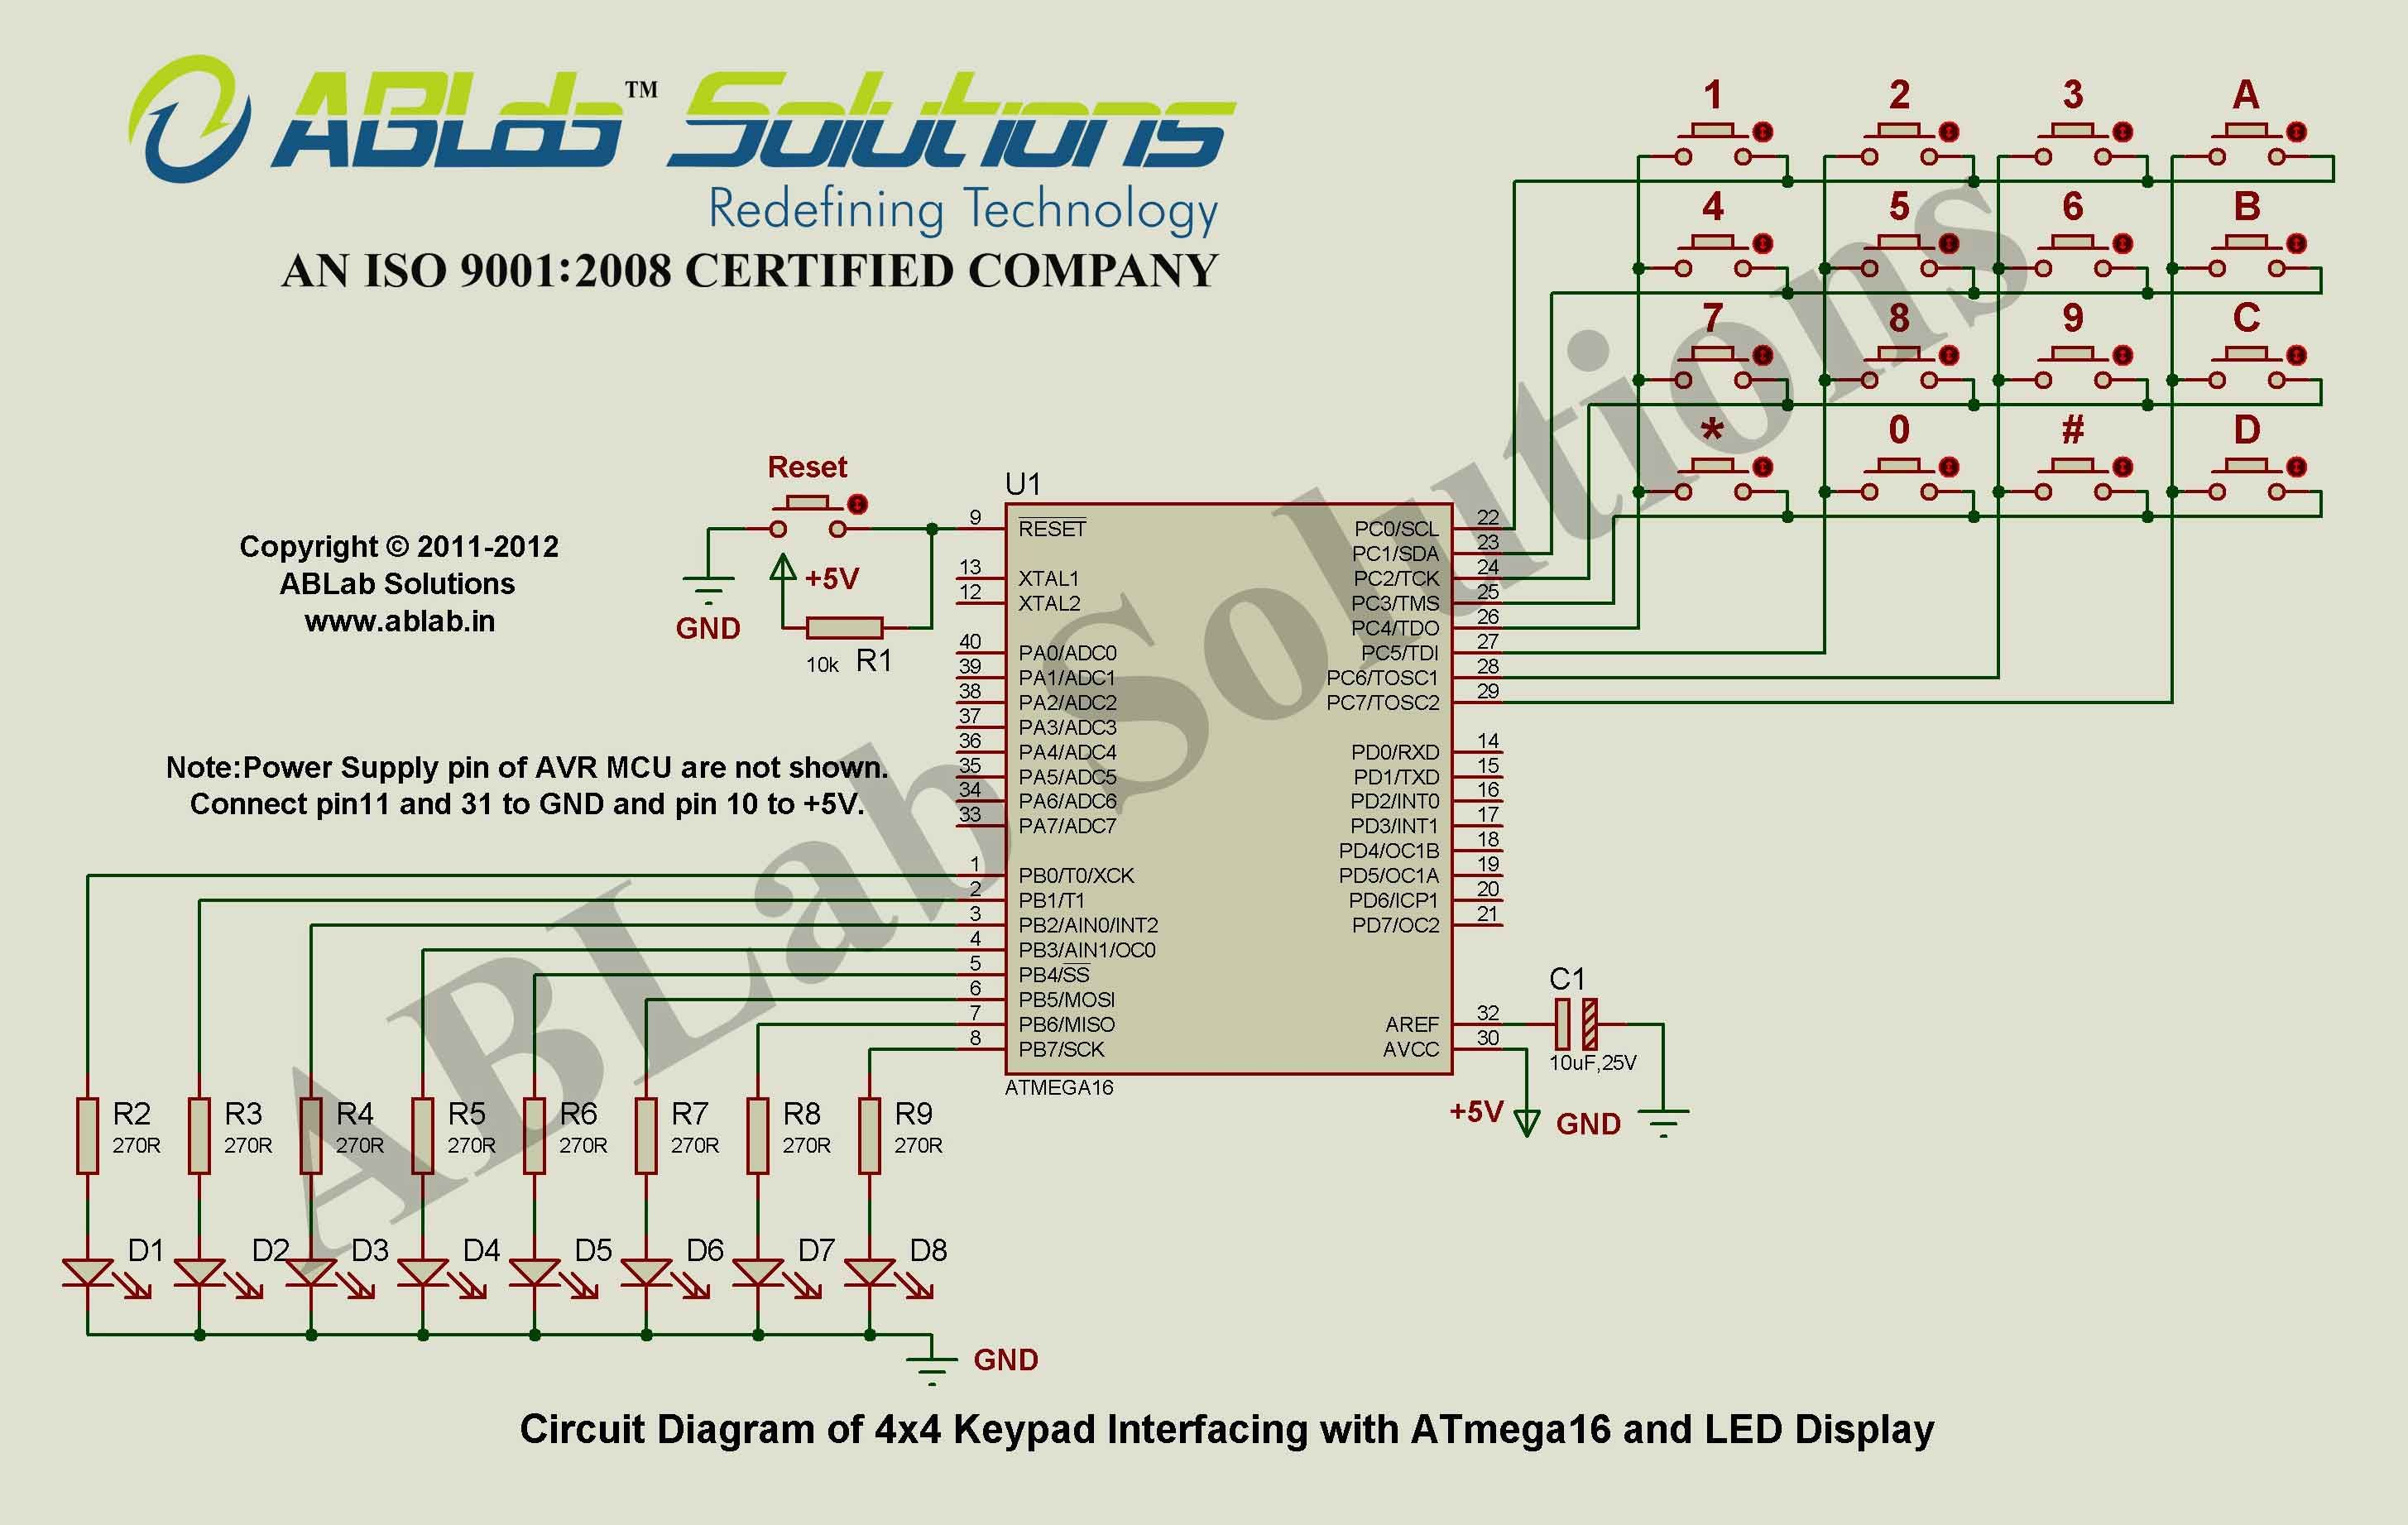 4x4-keypad-interfacing-with-avr atmega16 microcontroller-and-led-display  circuit diagram ablab solutions